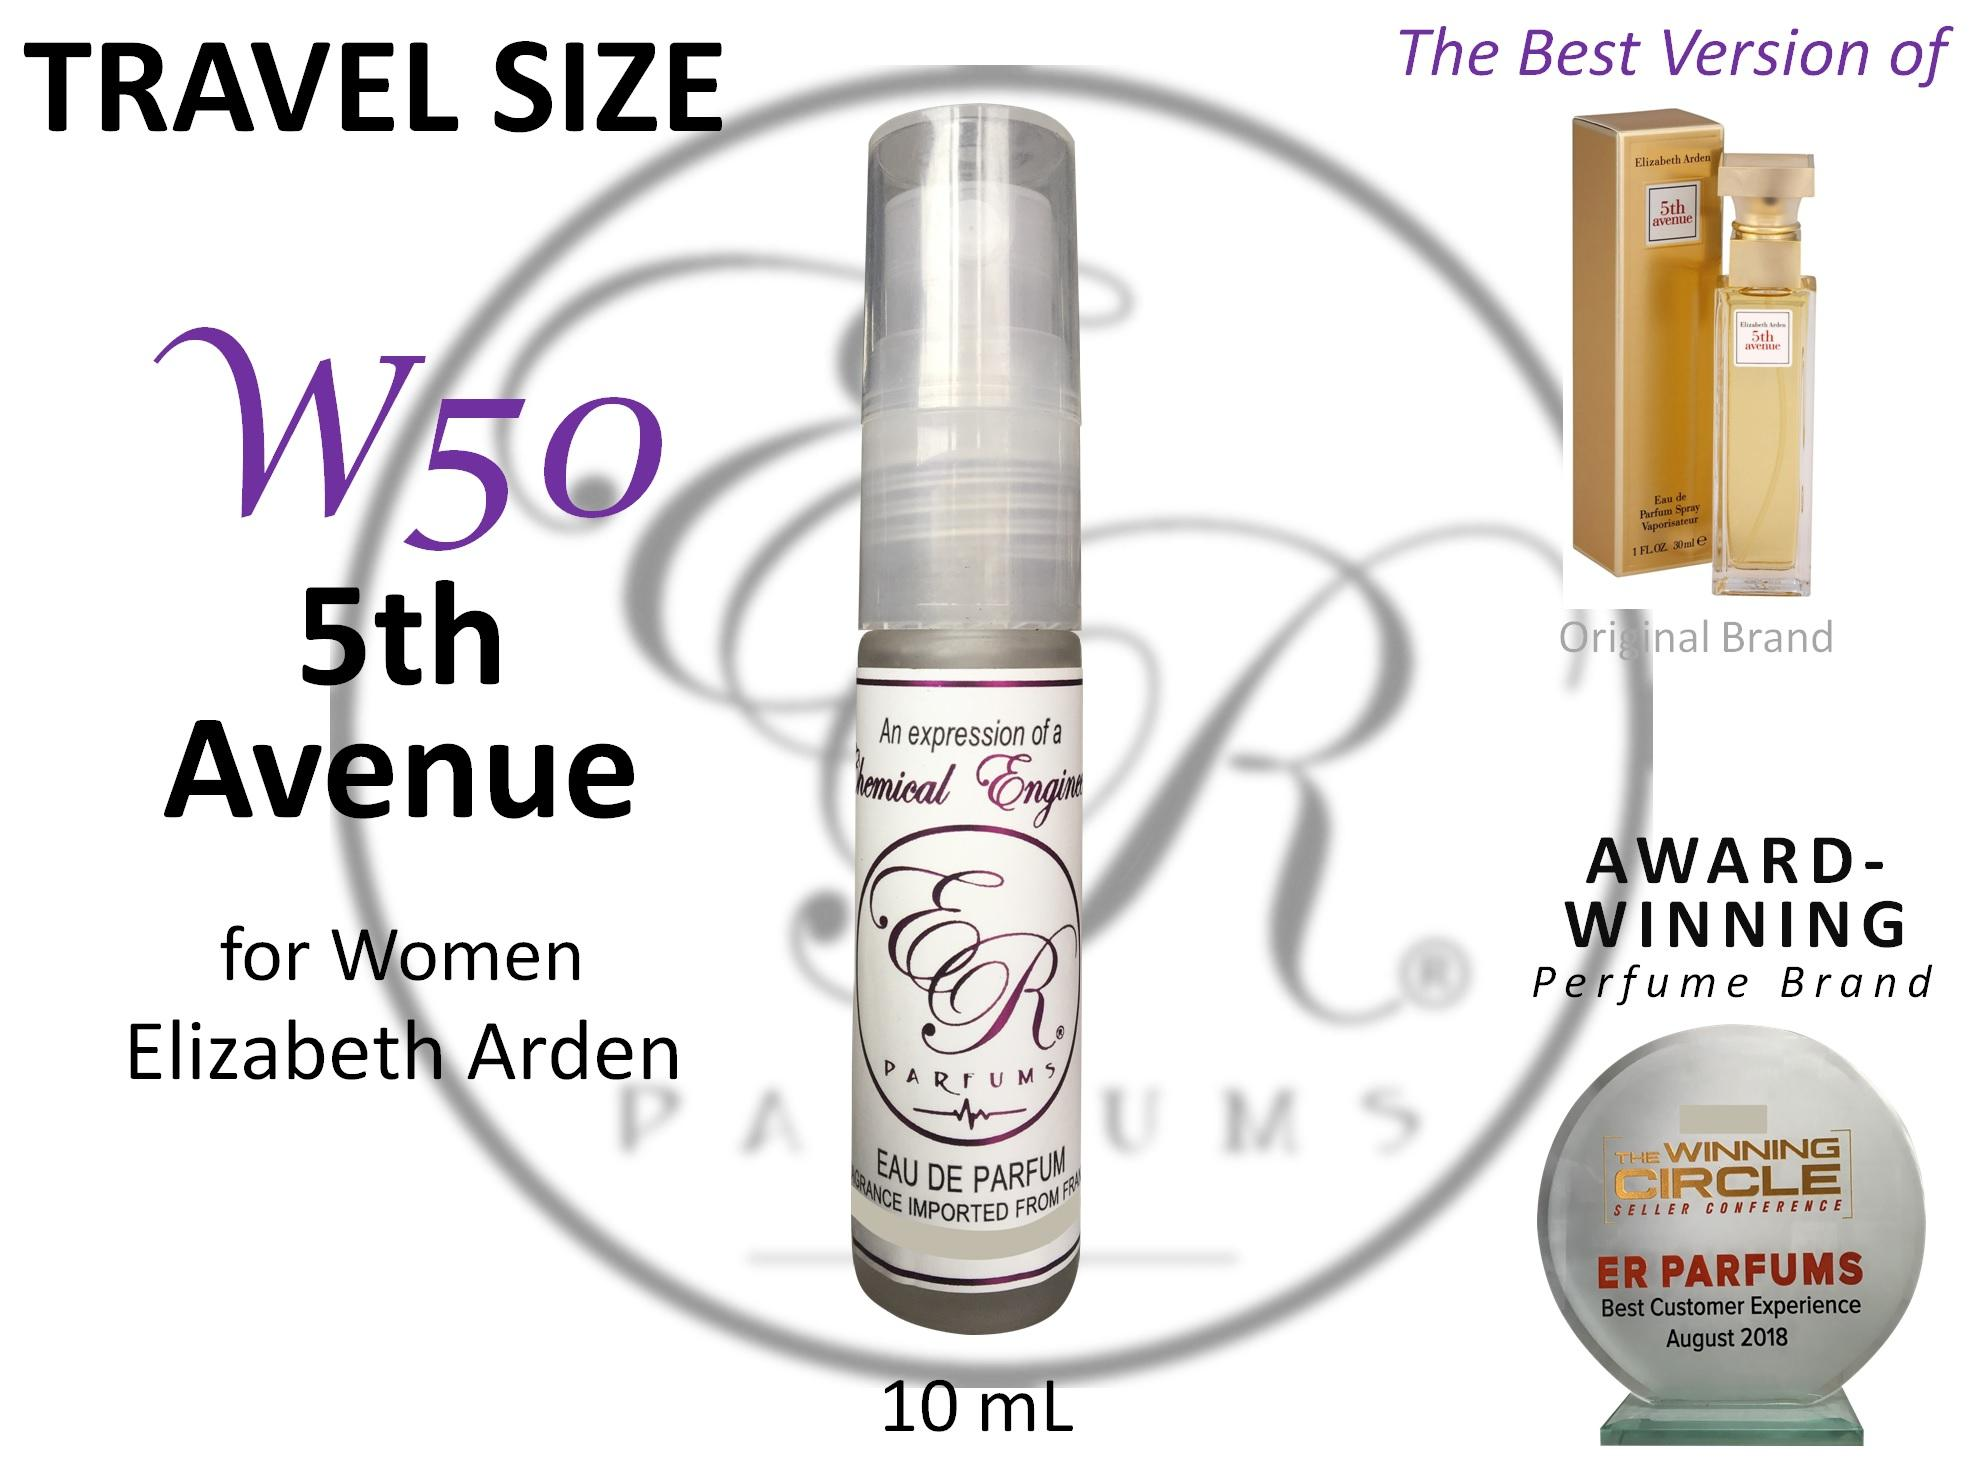 ER PARFUMS W50 5th Avenue for Women by Elizabeth Arden 1 piece 10 ml TRAVEL SIZE - BEST VERSION